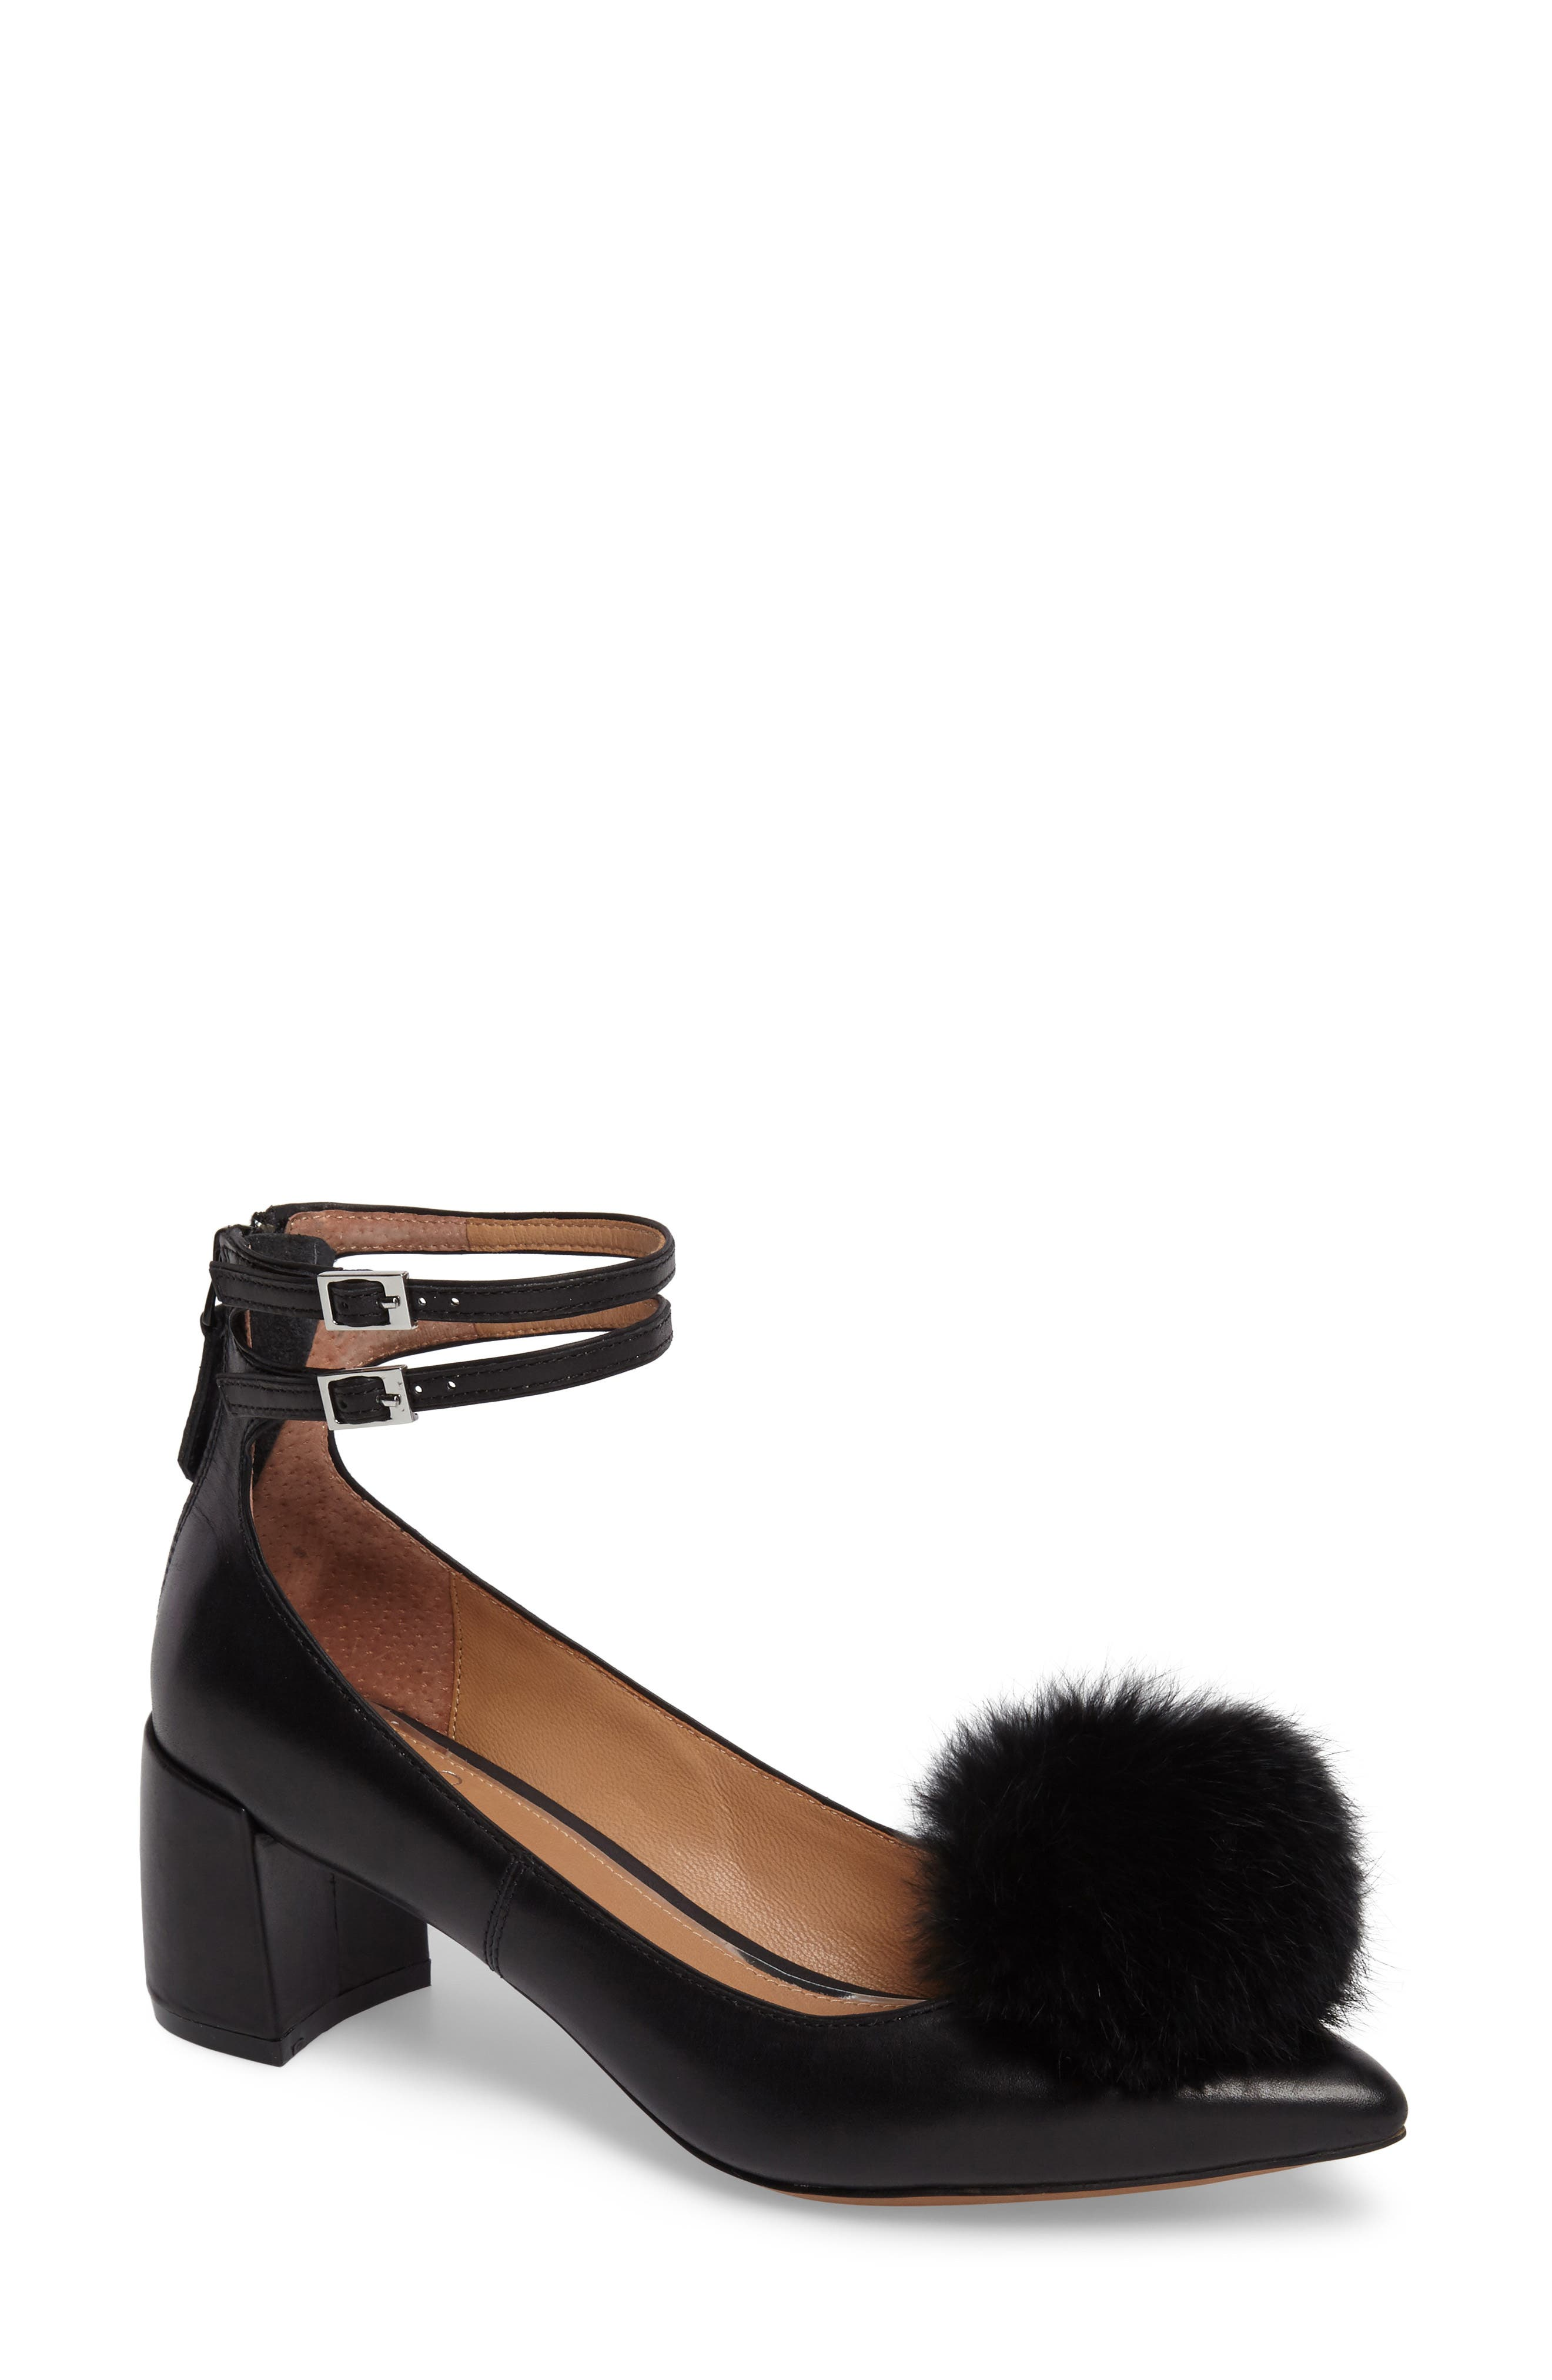 Alternate Image 1 Selected - Linea Paolo Nadine Ankle Strap Pump (Women)